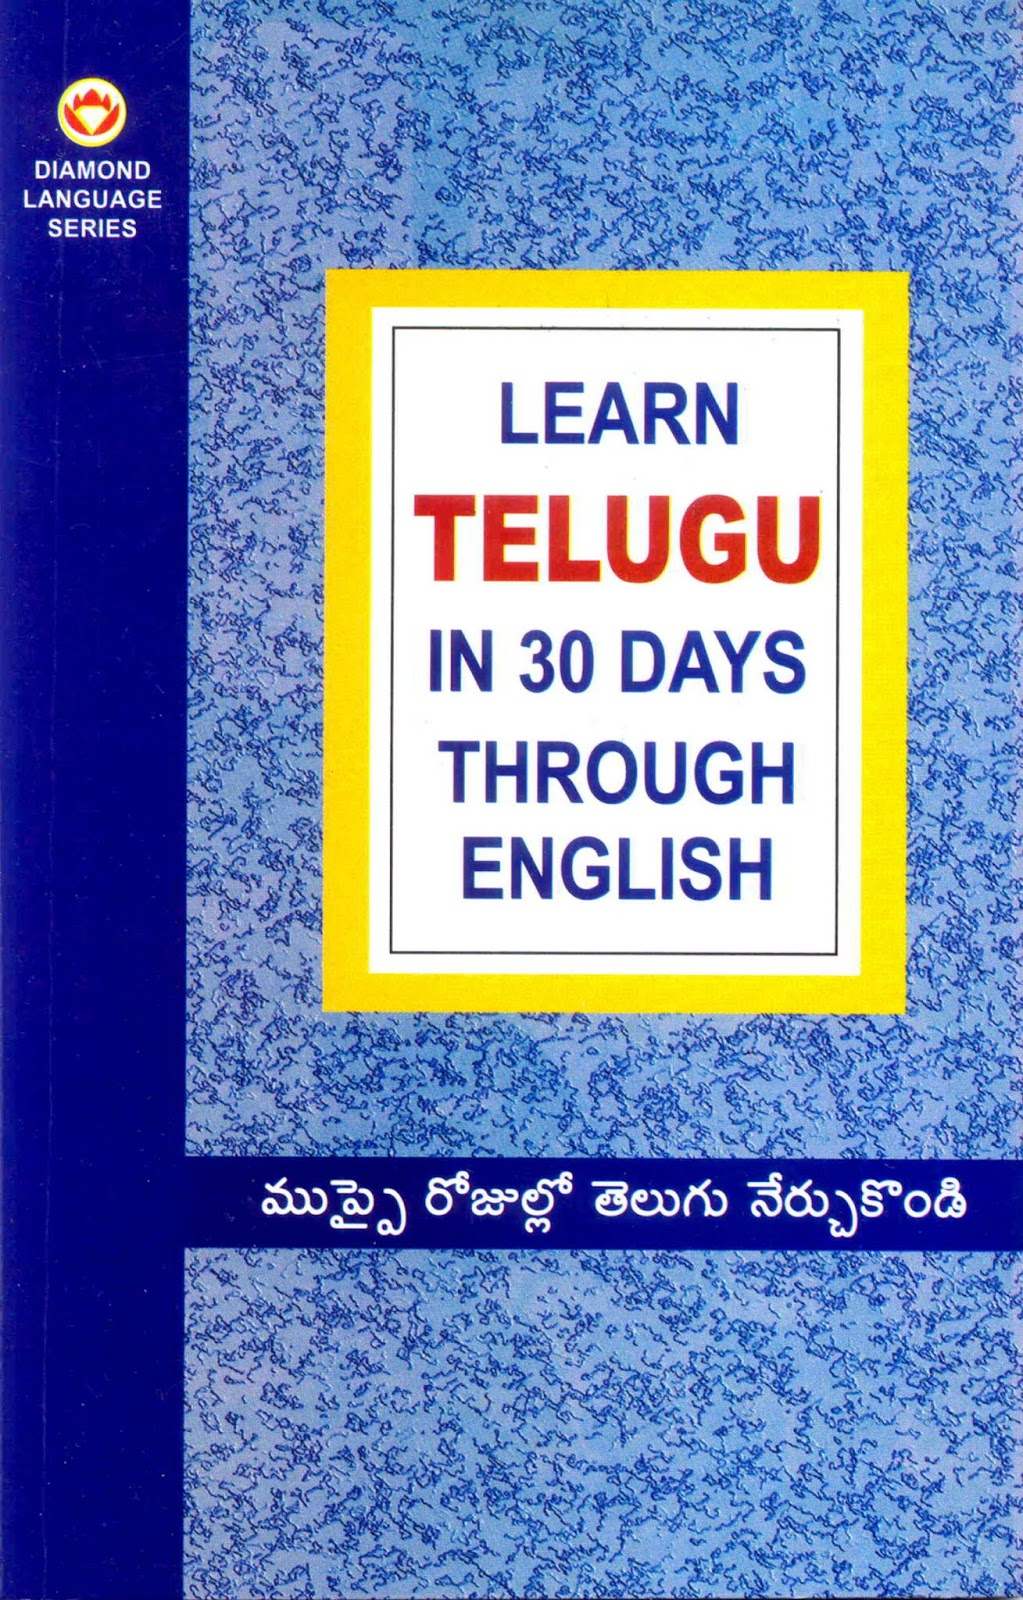 Learn Telugu in 30 Days through English | Learn English in 30 days full book PDF | Learning Telugu through English words